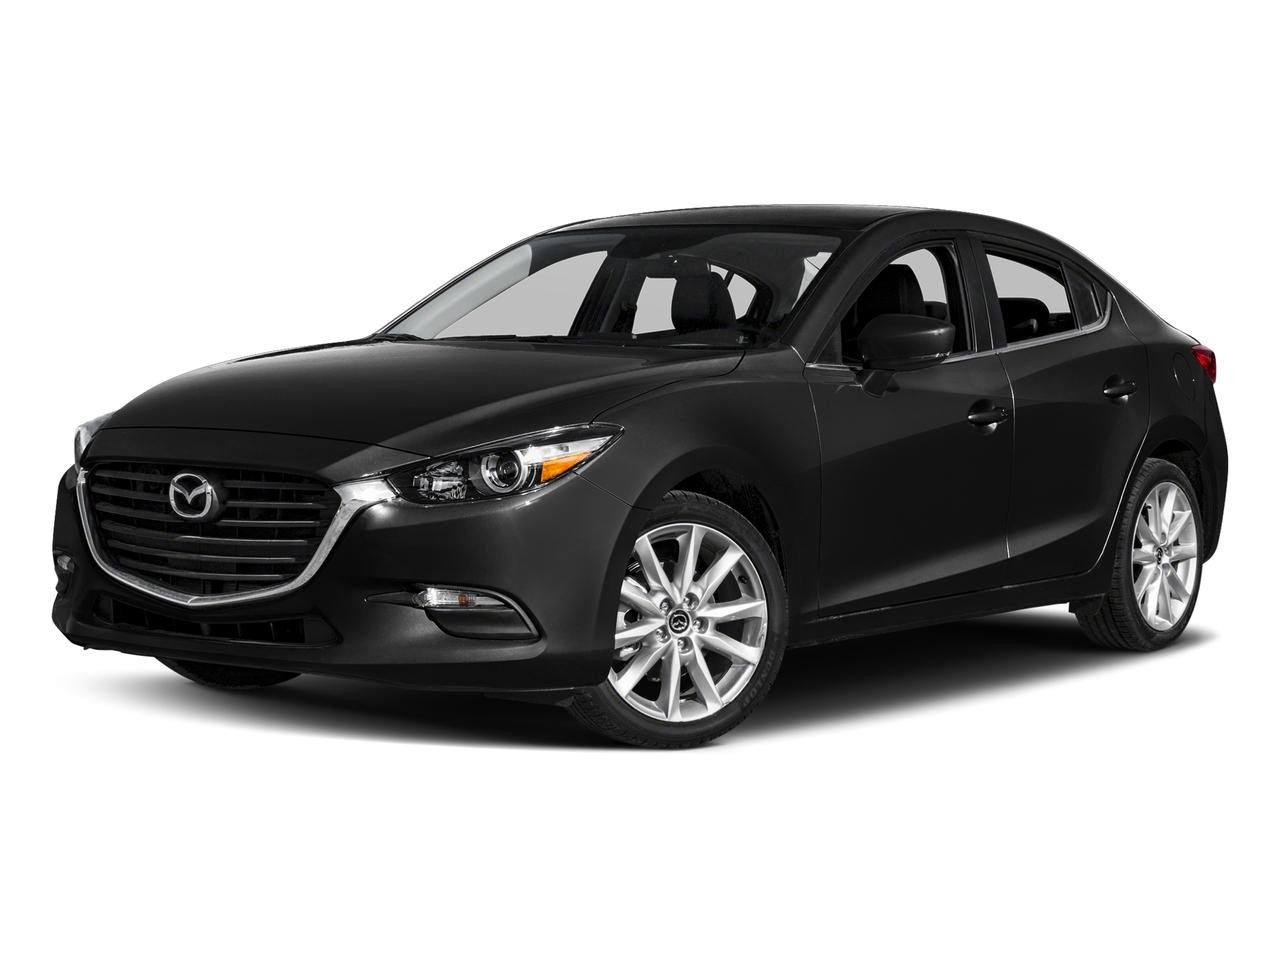 2017 Mazda Mazda3 4-Door Vehicle Photo in Oklahoma City, OK 73114